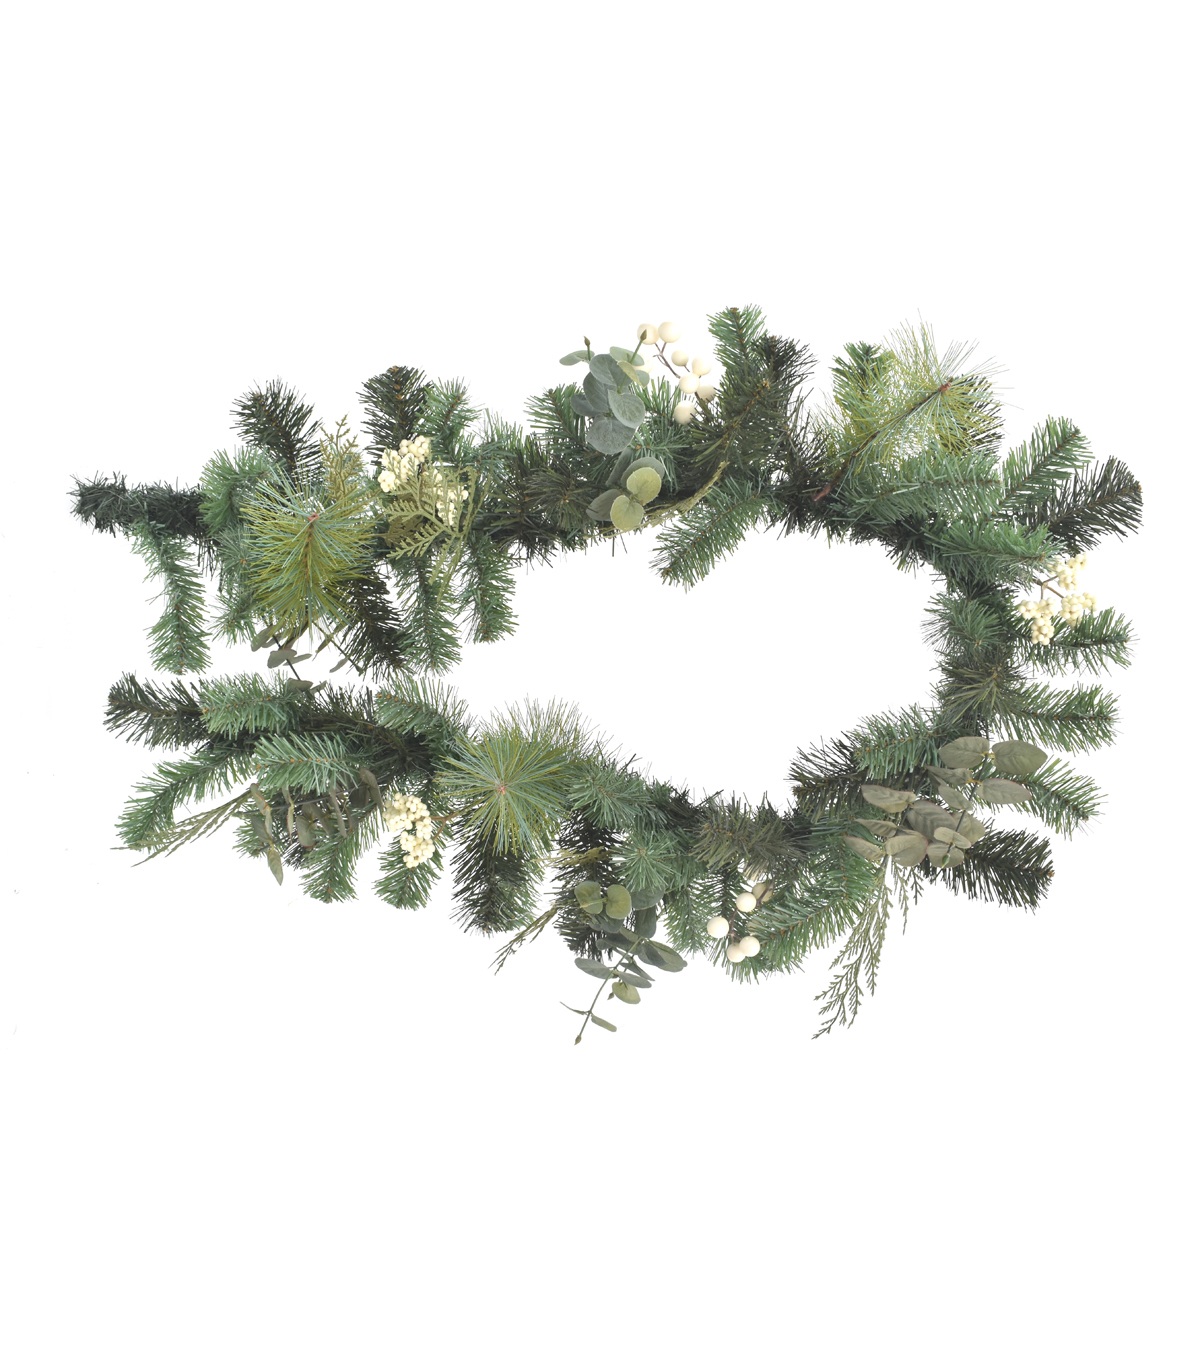 Blooming Holiday Christmas 66'' White Berry & Greenery Garland                      Blooming Holiday Christmas 66'' White Berry & Greenery Garland by Blooming Holiday